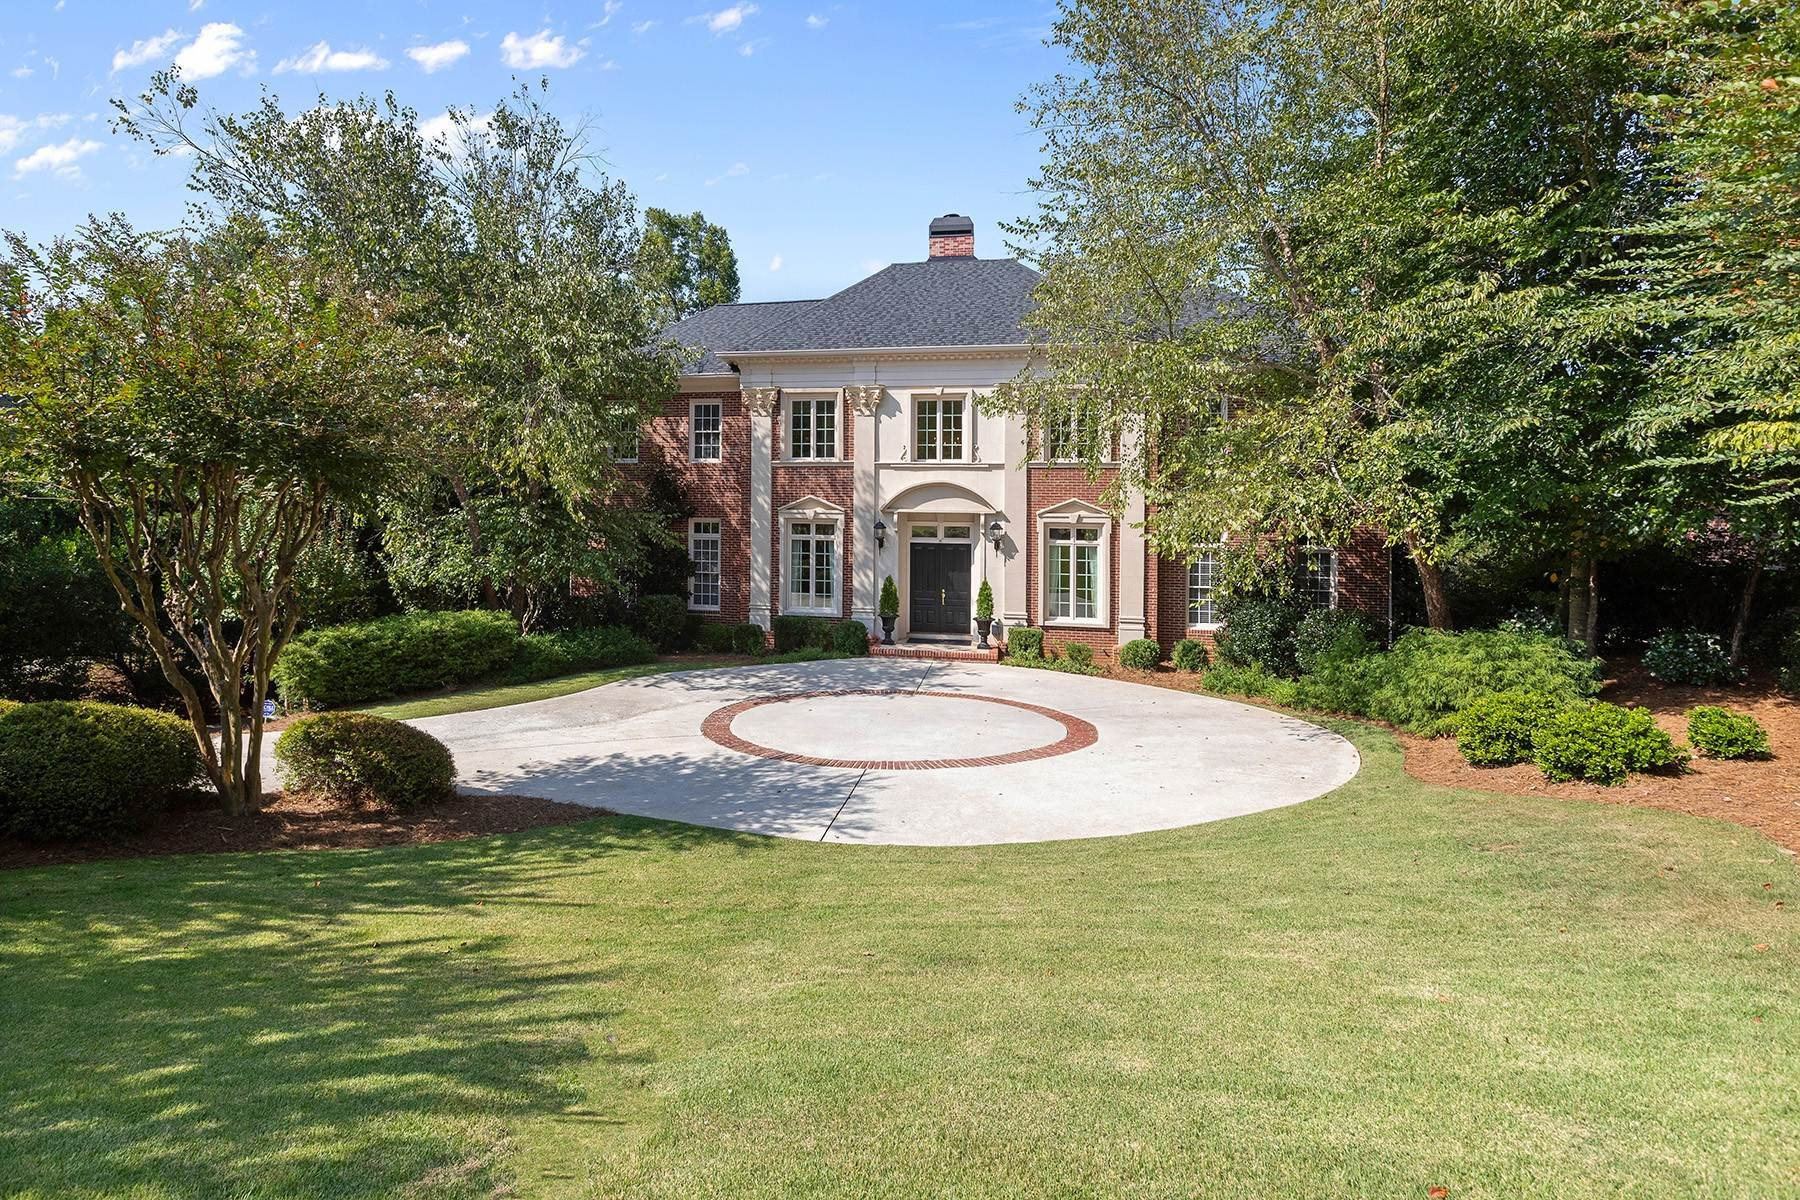 Single Family Homes for Sale at Stunning Riverfront Home in Peachtree Corners Overlooking AAC Golf Course 3831 River Mansions Drive Peachtree Corners, Georgia 30096 United States